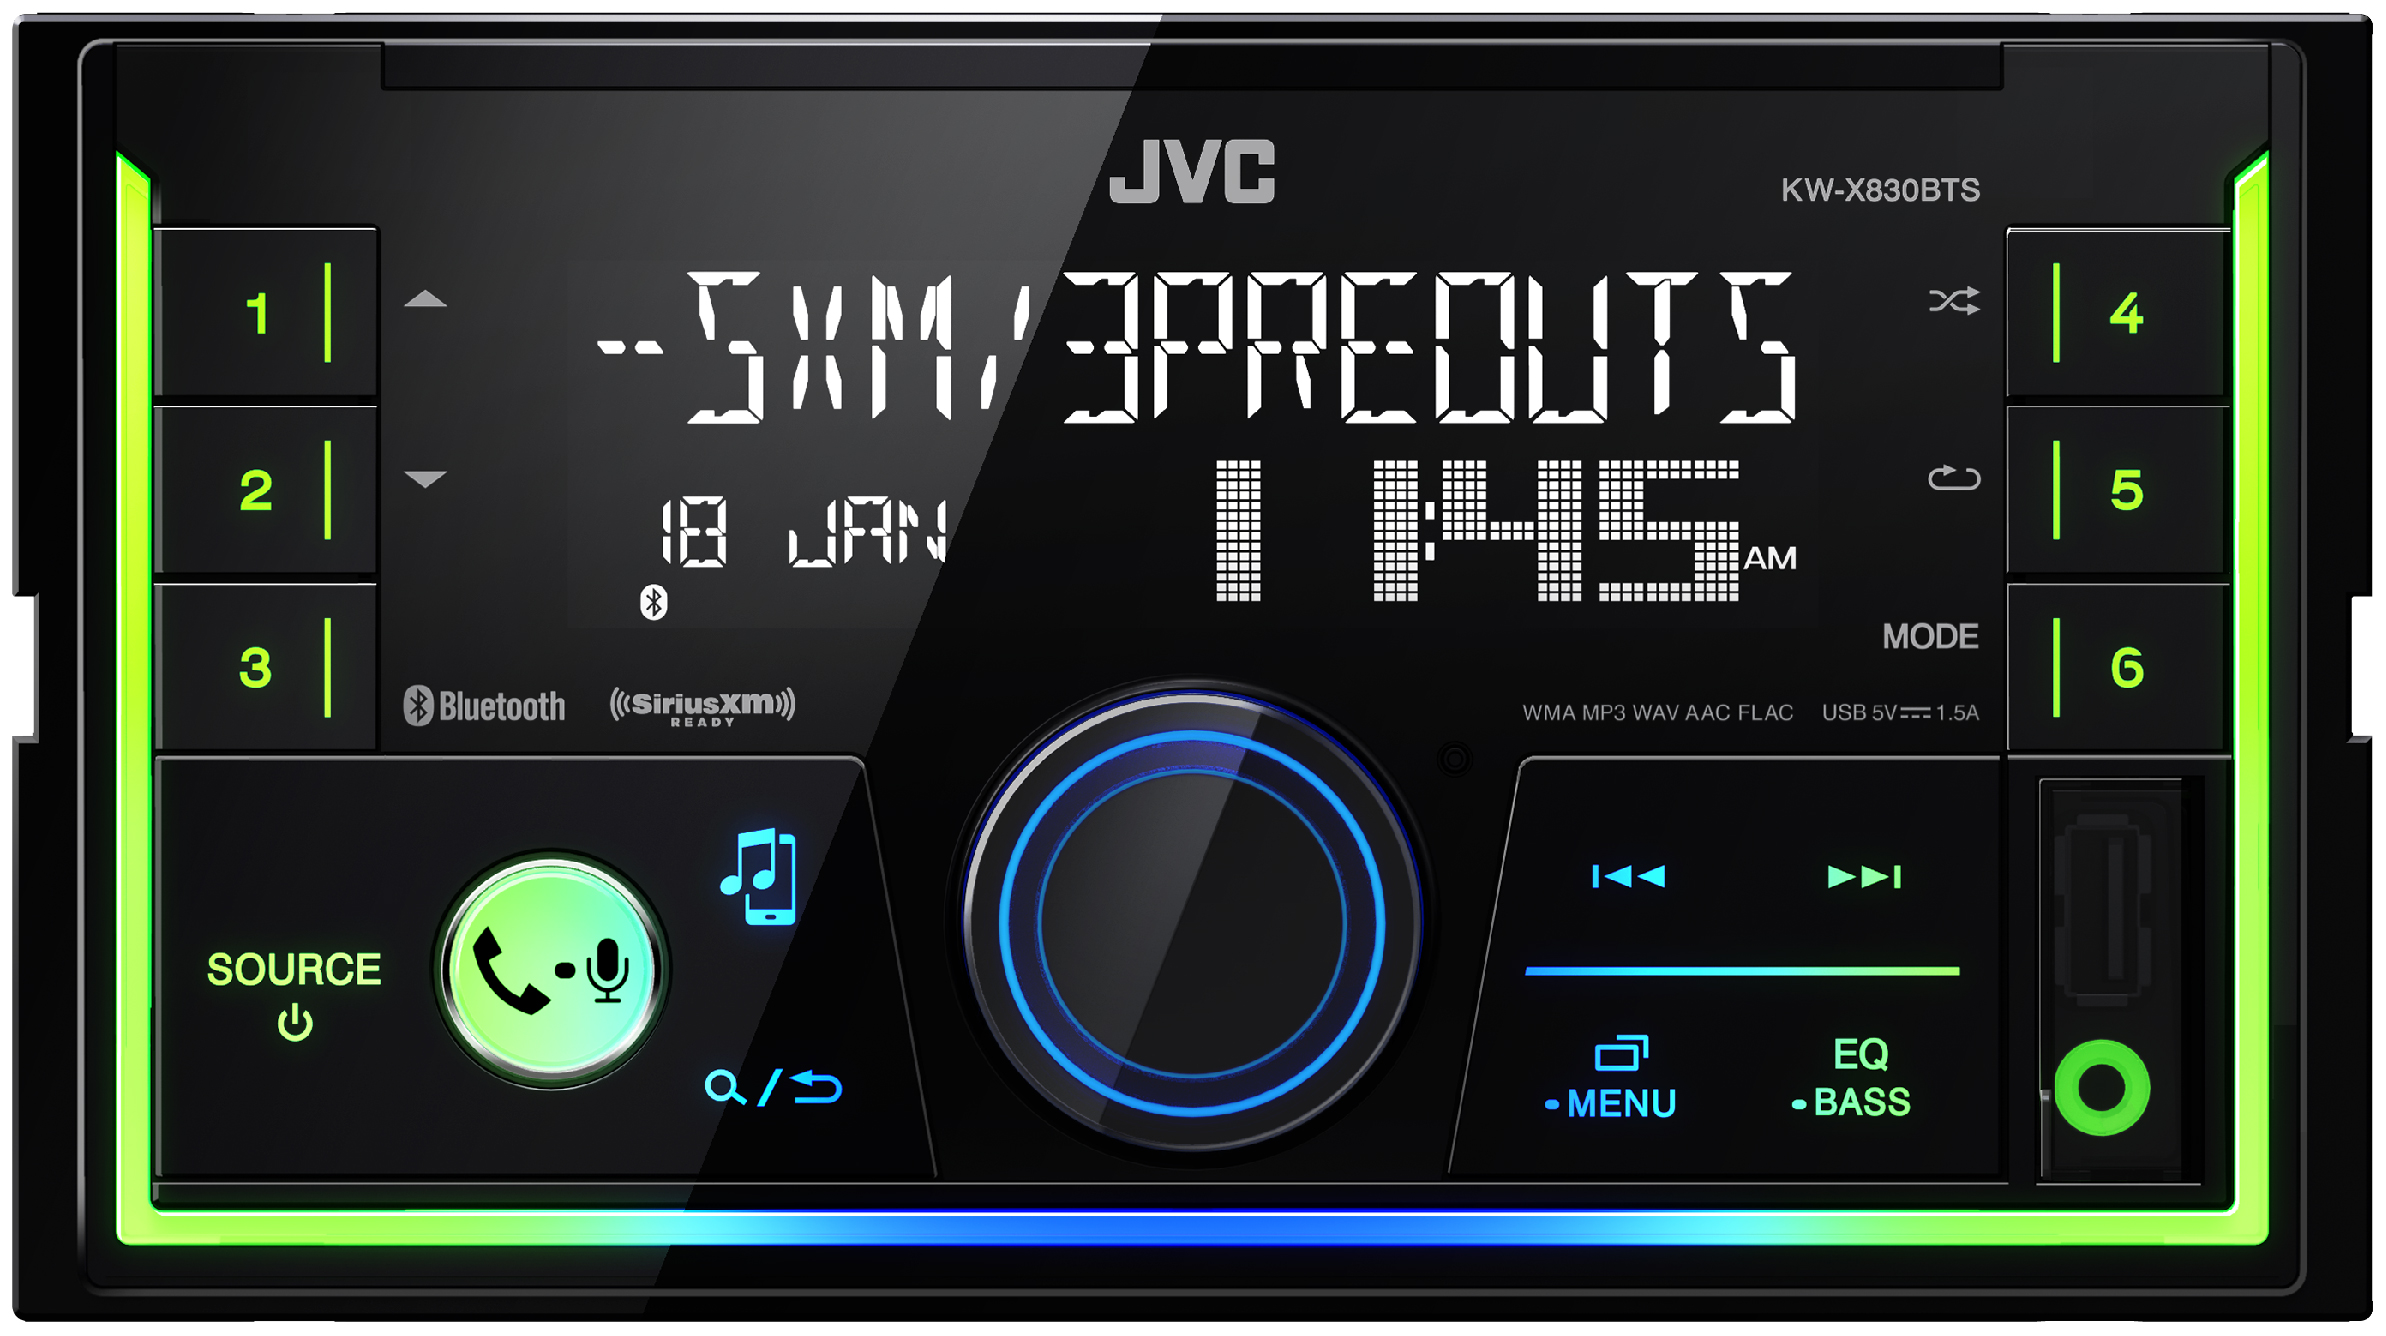 Jvc Kw Sx83bts In Dash Receiver Front Usb Apple And Android Pandora Pioneer Wiring Harness Diagram Compatible Aux Input Siriusxm Ready Does Not Play Cds